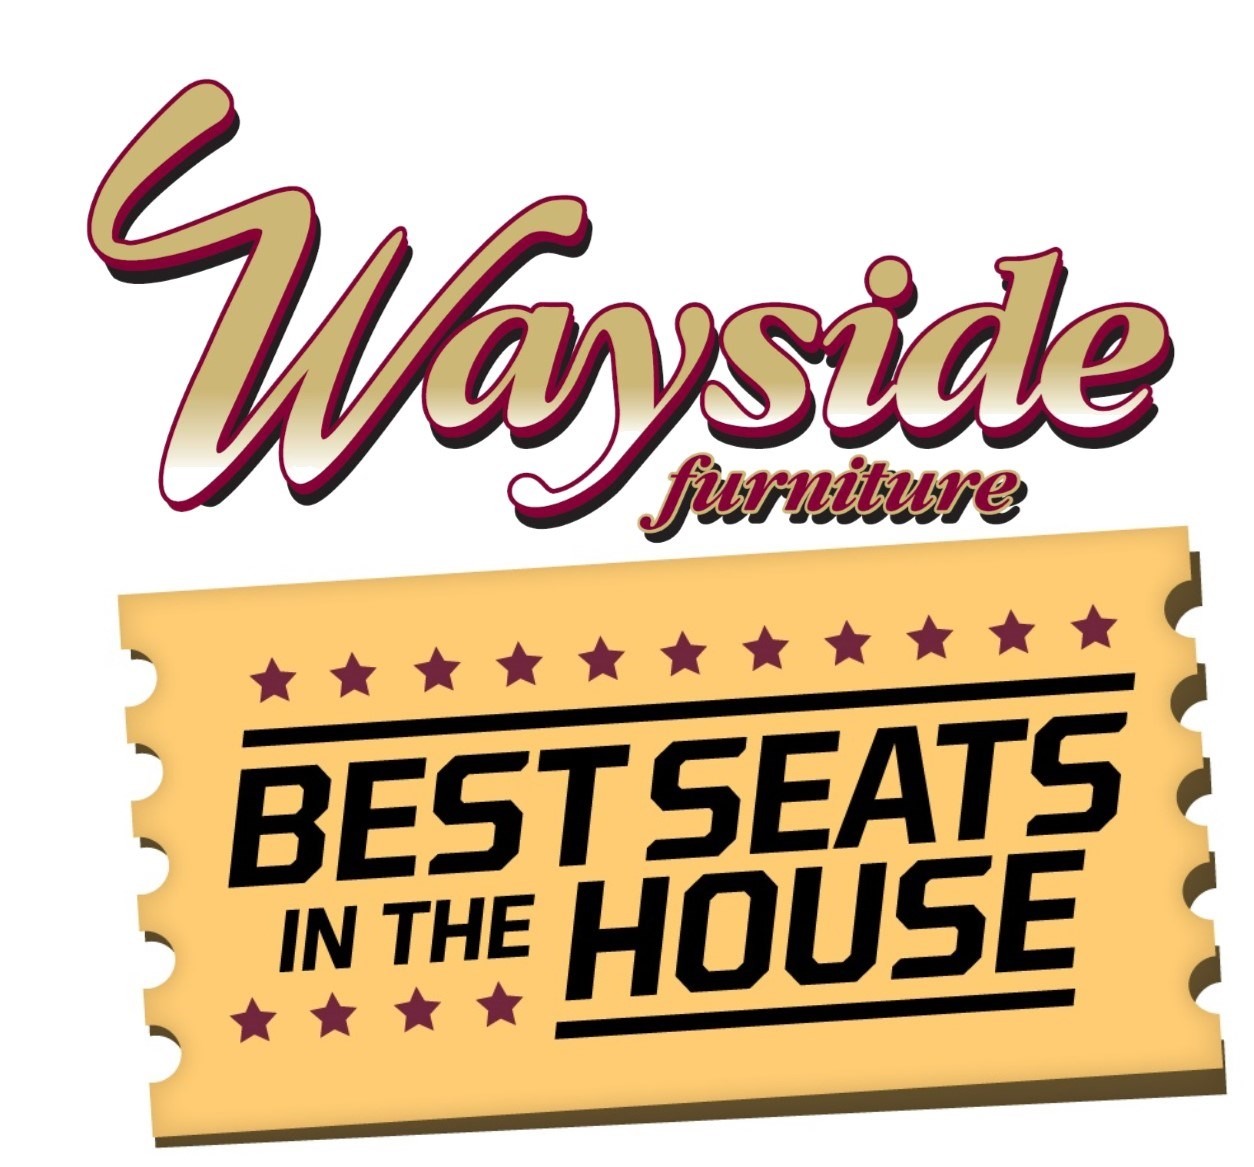 Enter to win our Best Seats in the House Contest